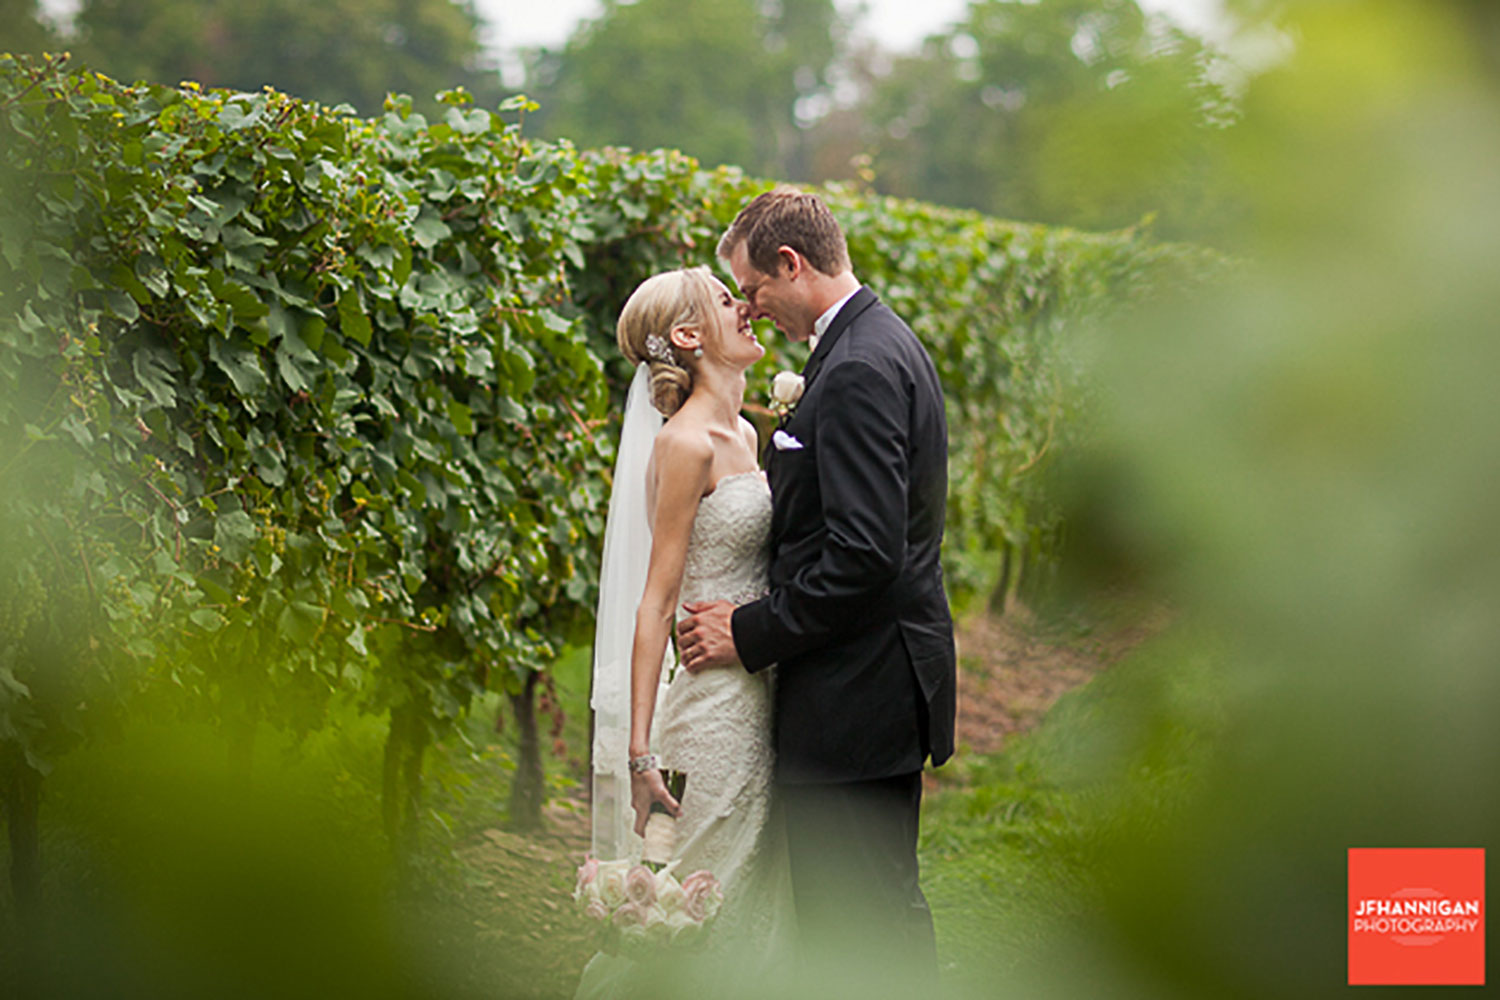 Pillar-and-Post-Vintage-Hotels-Wedding-Vineyard-Bride-photo-by-Joel-Hannigan-Photography-0054.JPG